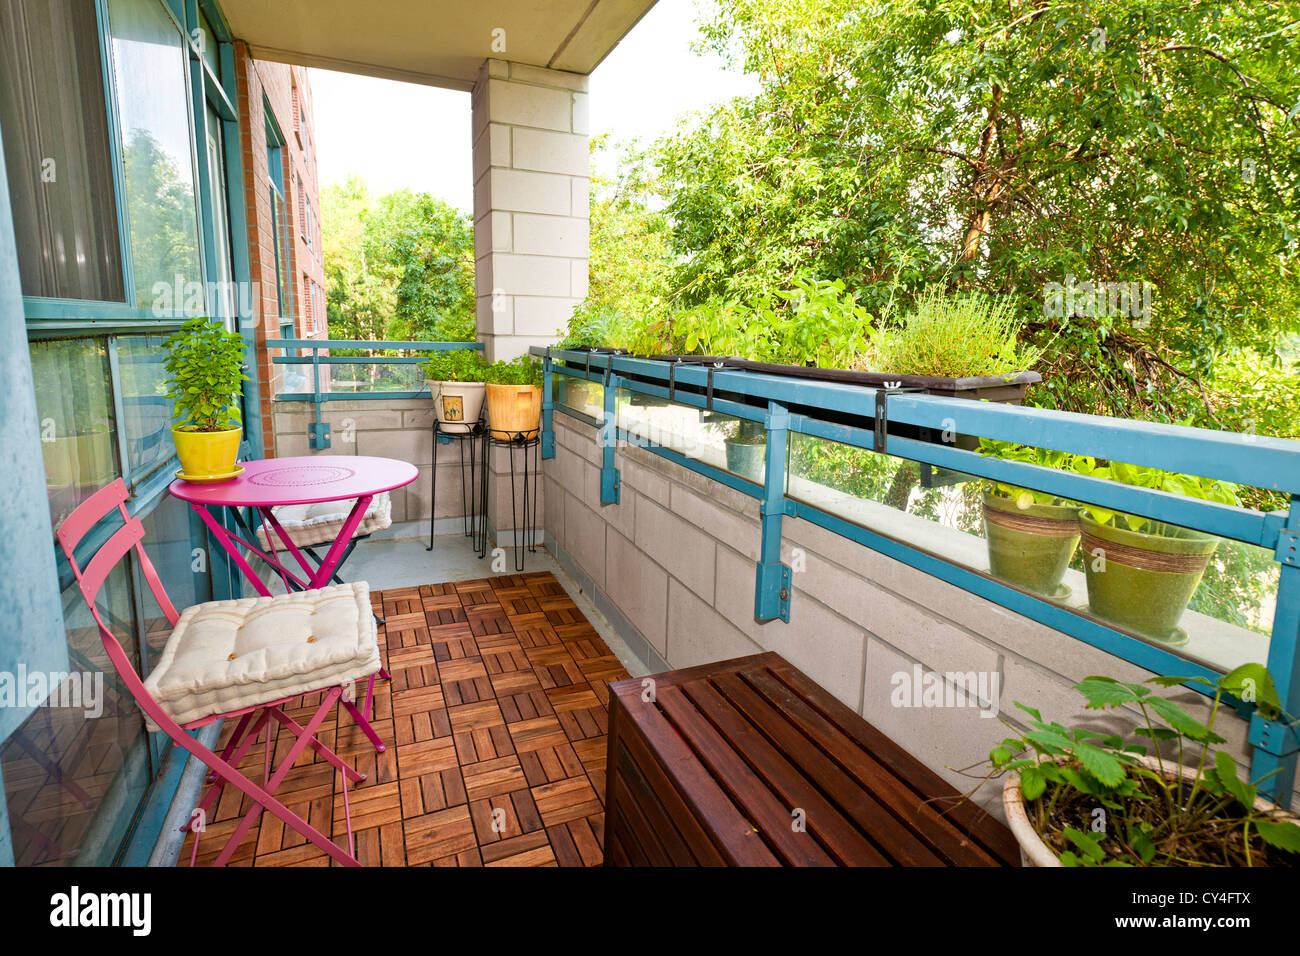 Balcony of condo with patio furniture and plants - Stock Image